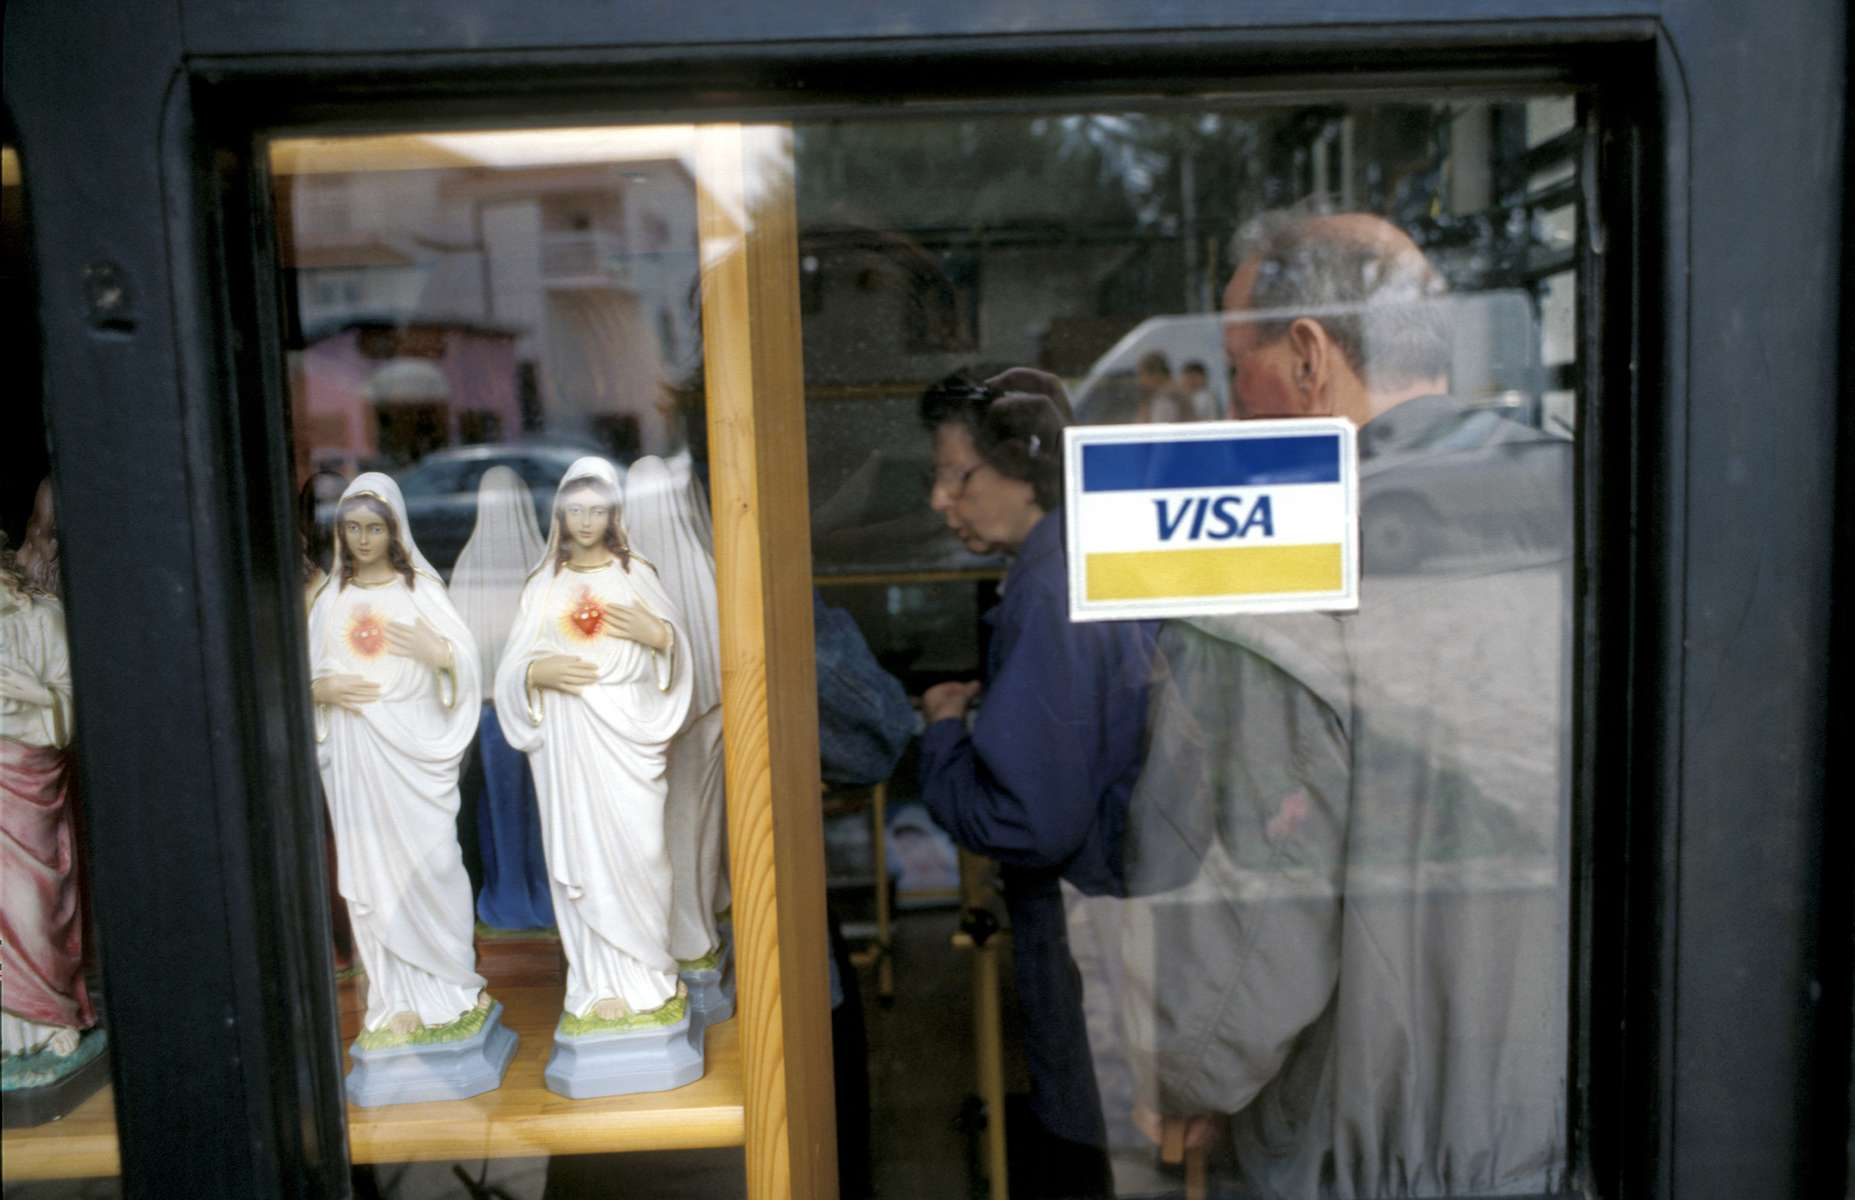 One of dozens of tourist shops in Medjugorje, which sell religious icons and statues to pilgrims who come from around the world to see the site where six teenagers claim to have had a vision of the Virgin Mary in 1981.